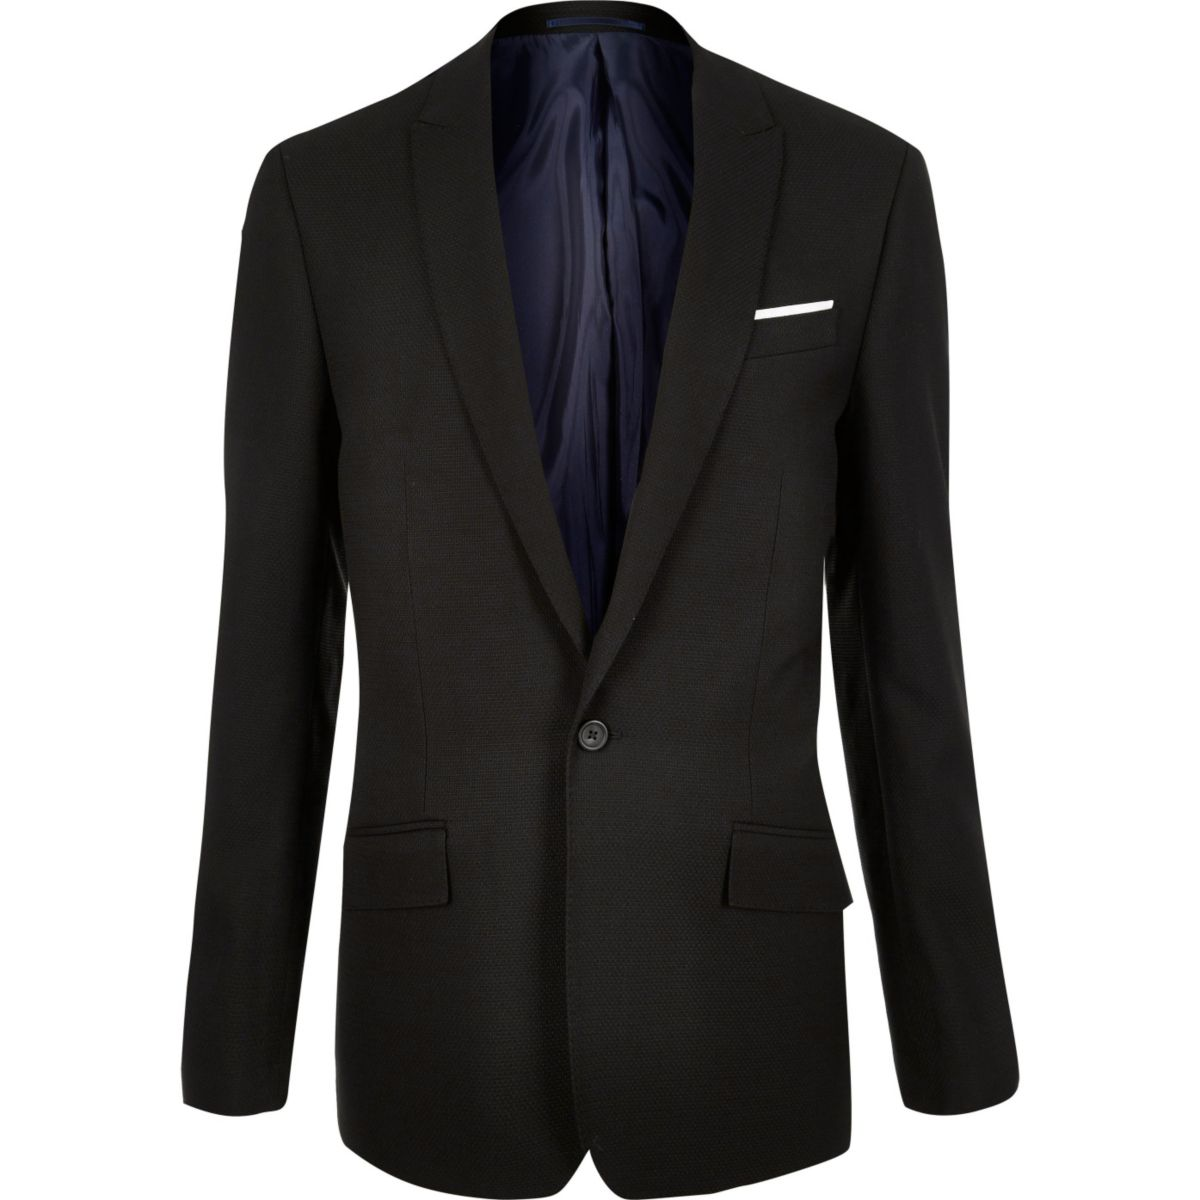 Black slim fit suit jacket